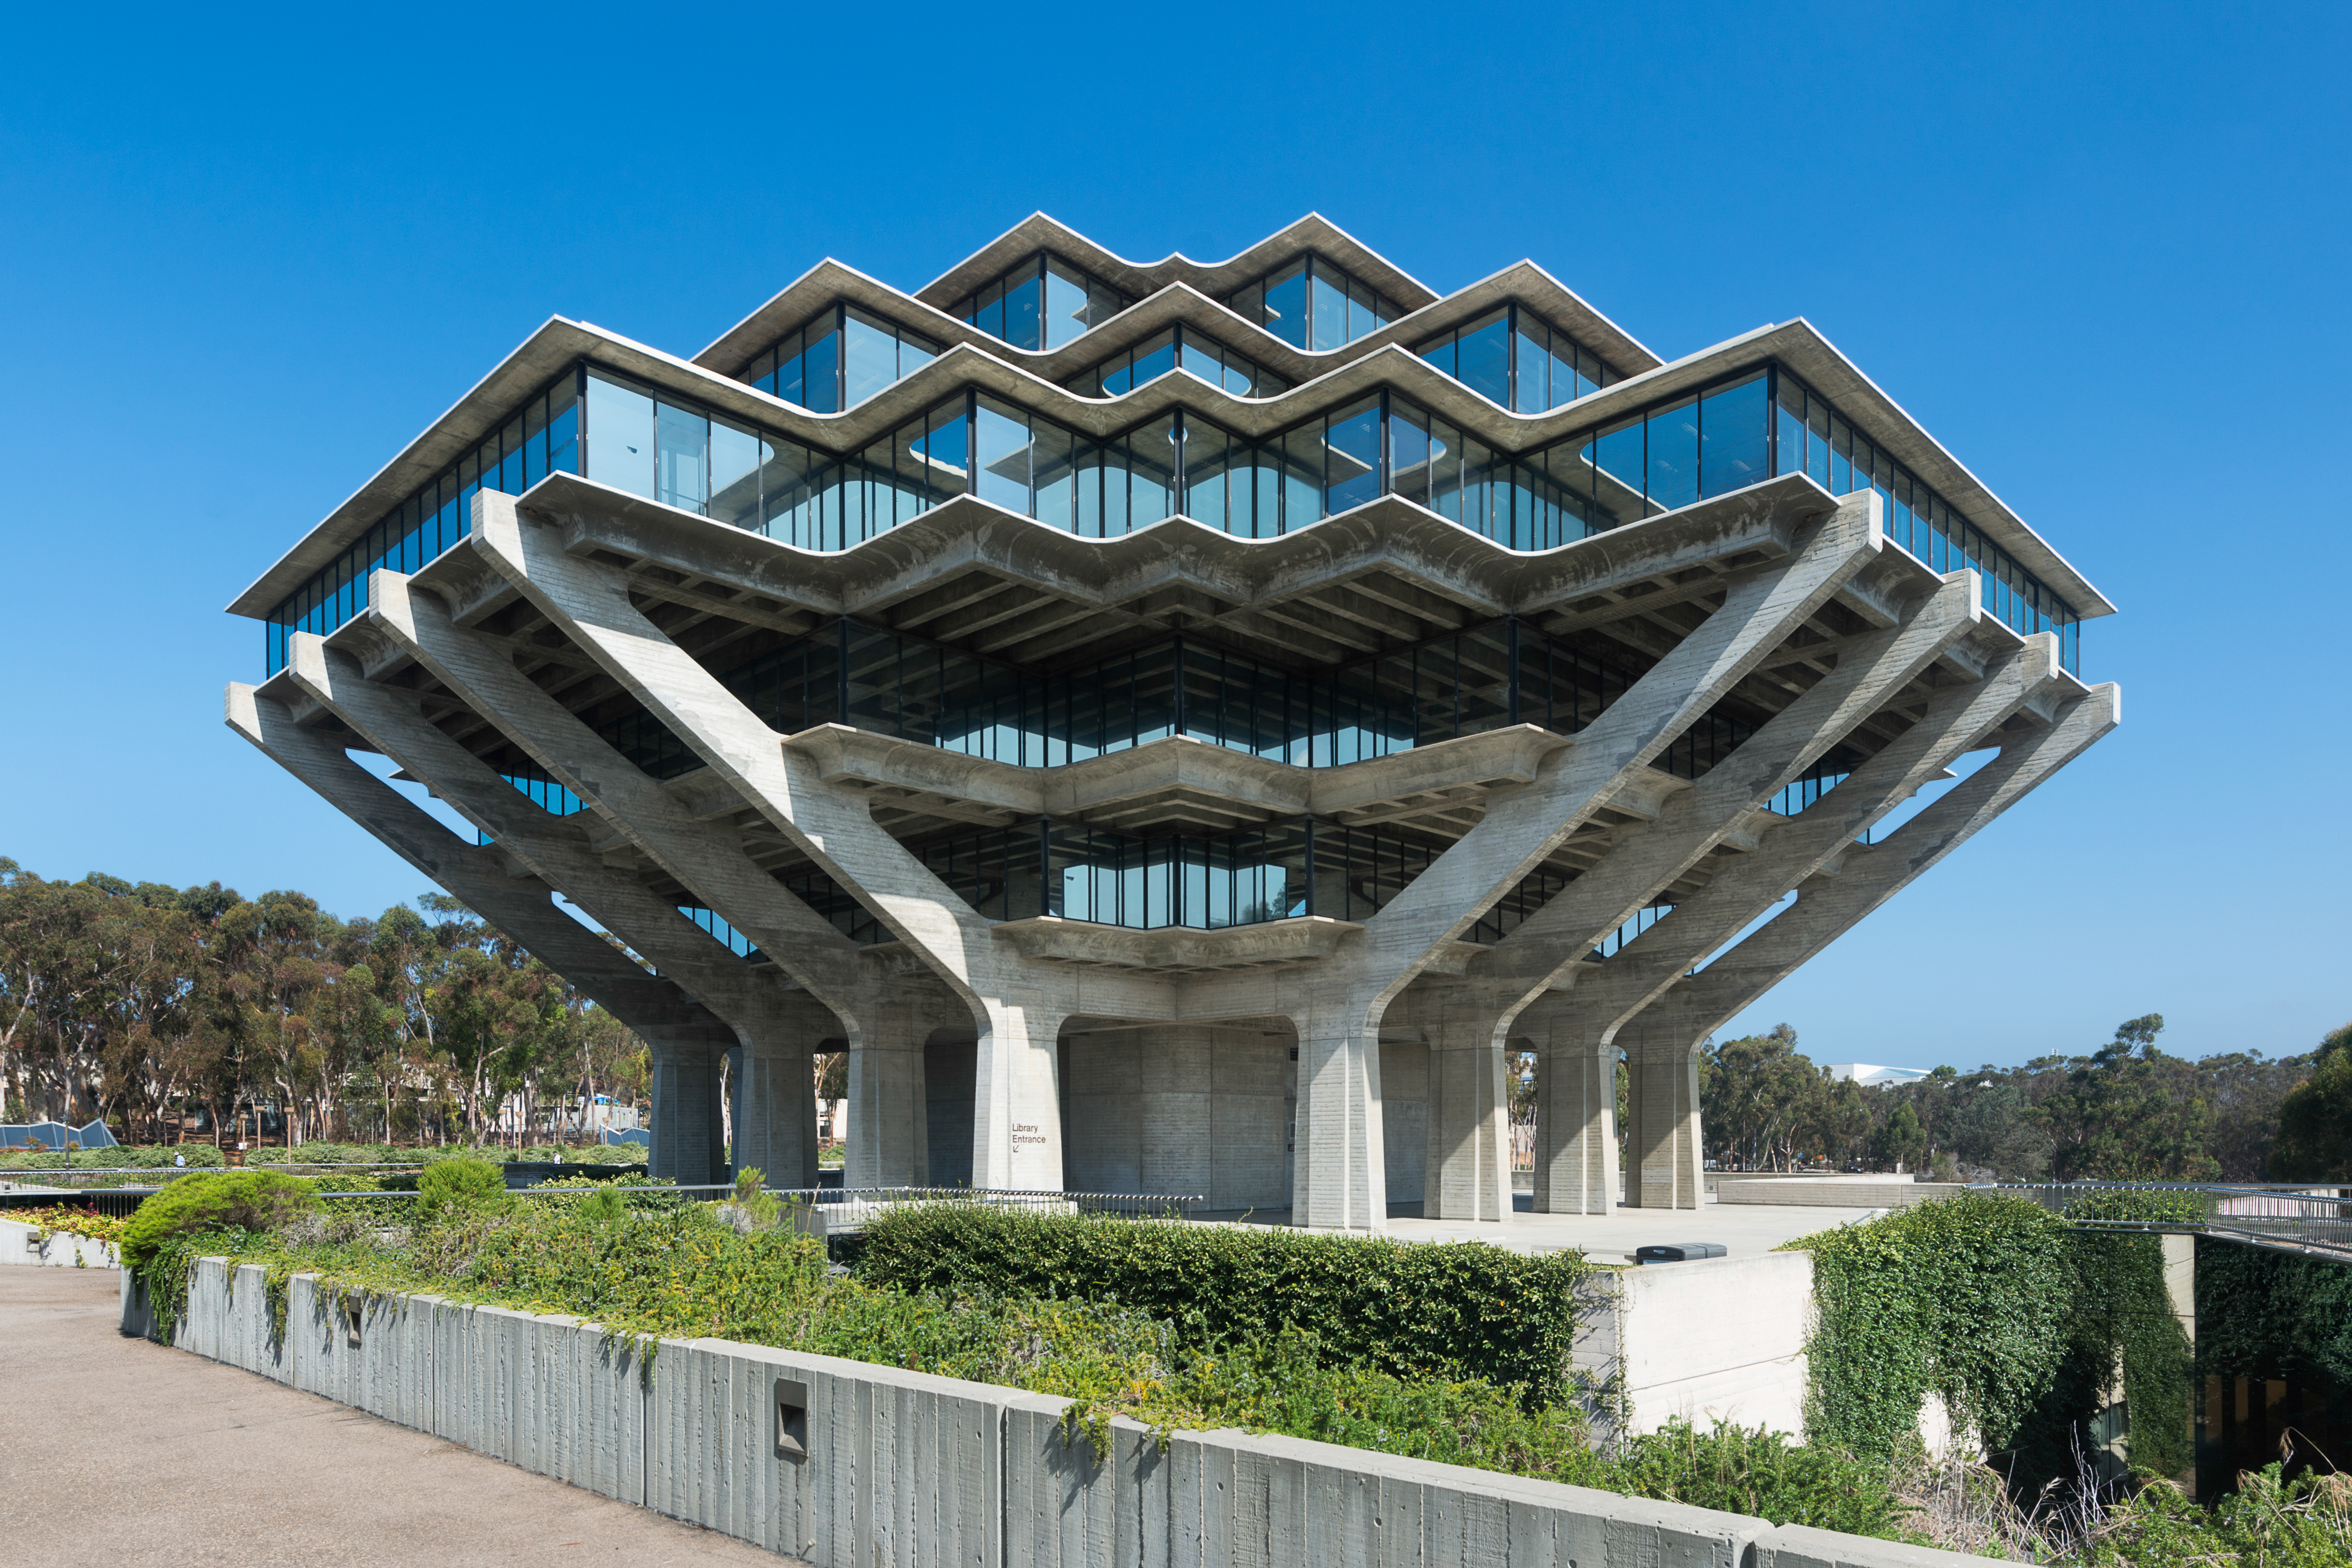 The 20 most beautiful libraries in the U.S.